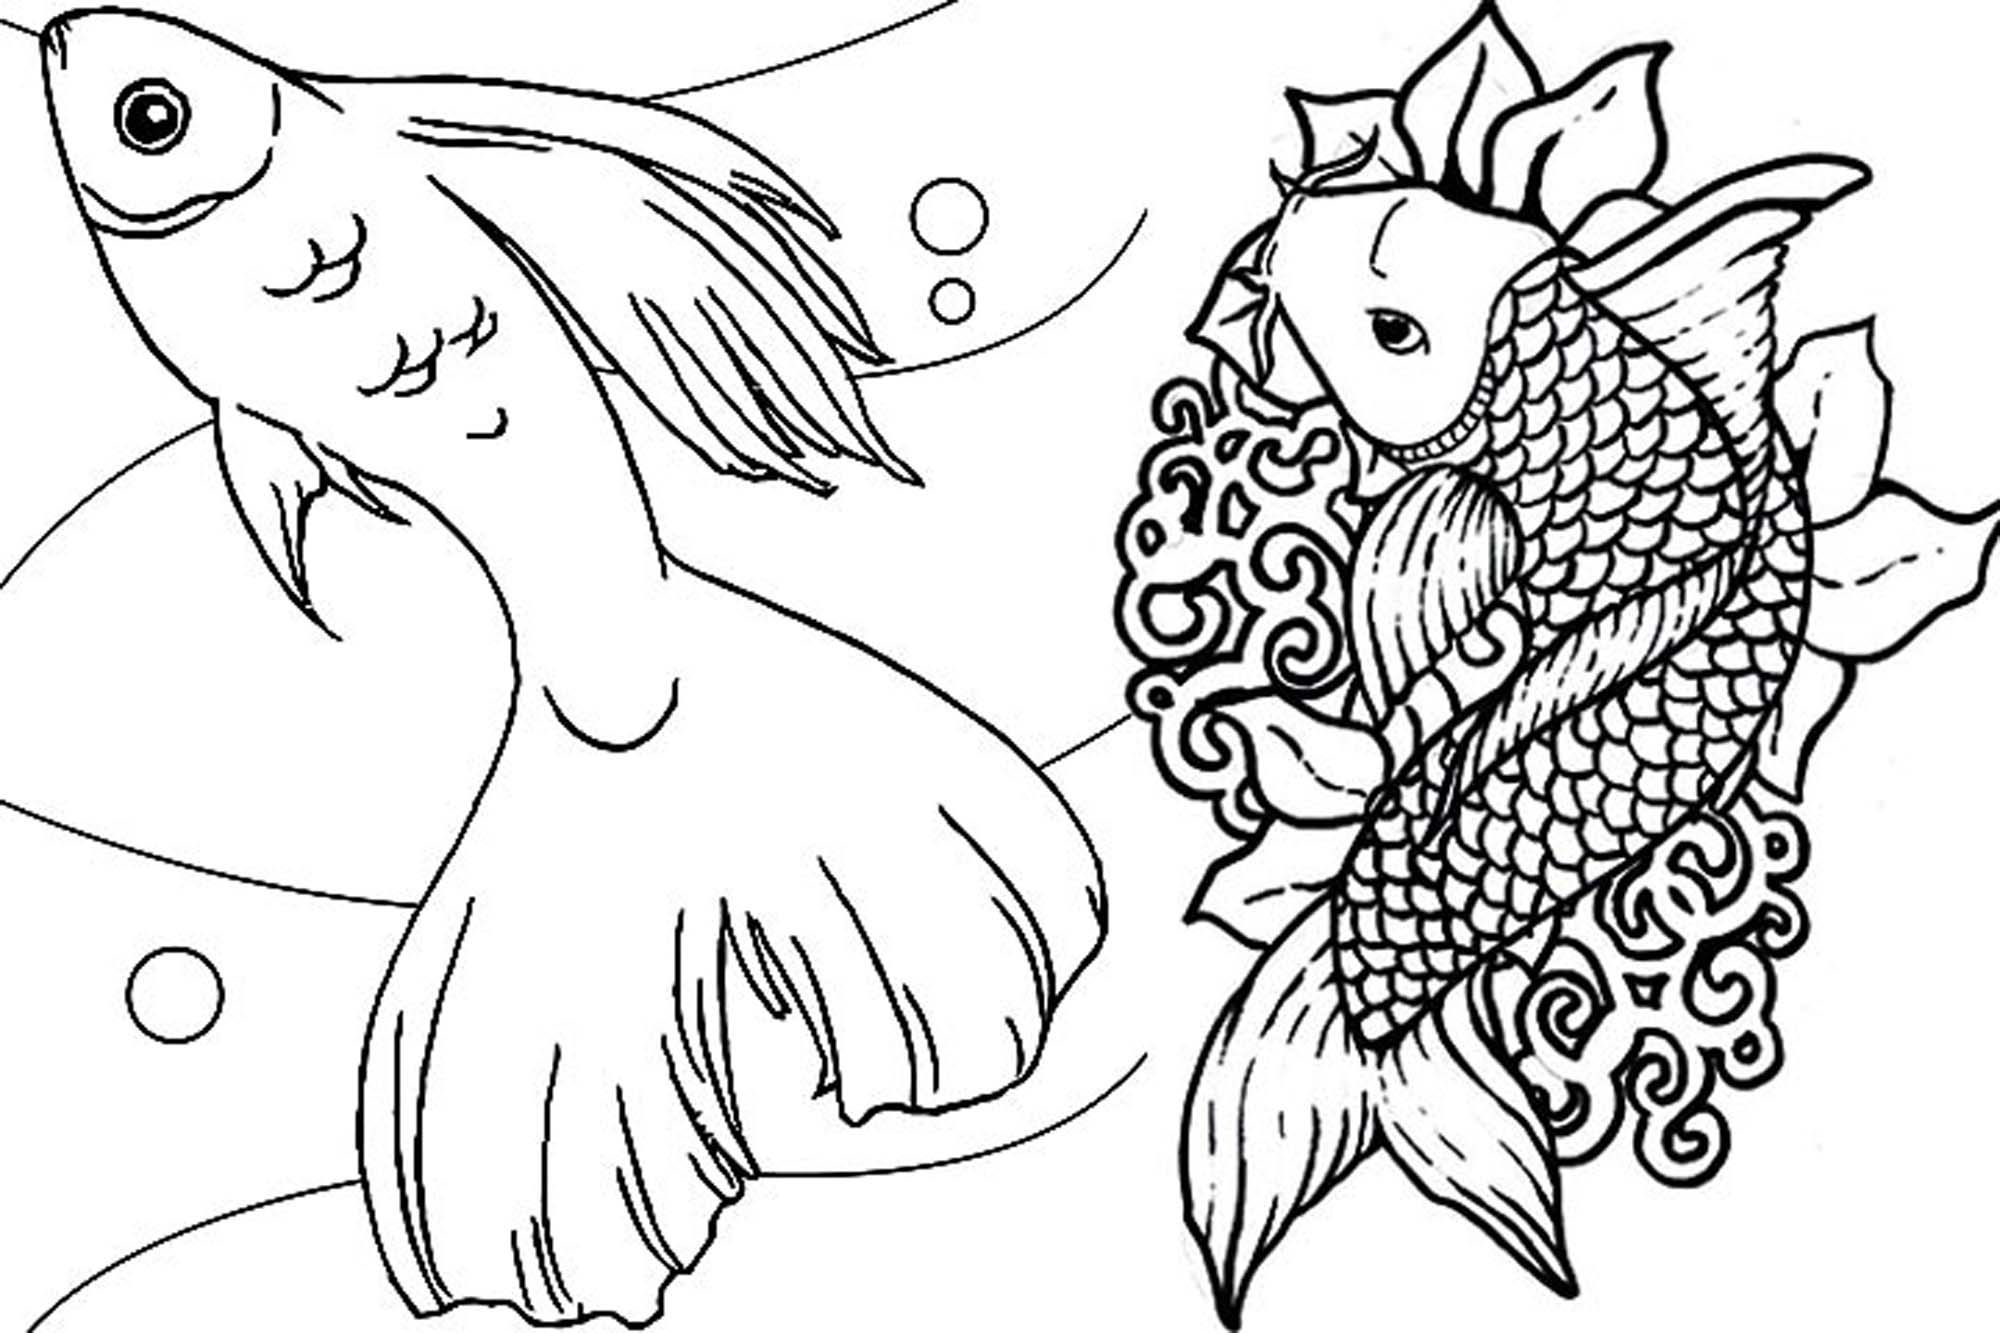 Rainbow Fish Coloring Page At Getdrawings Com Free For Personal